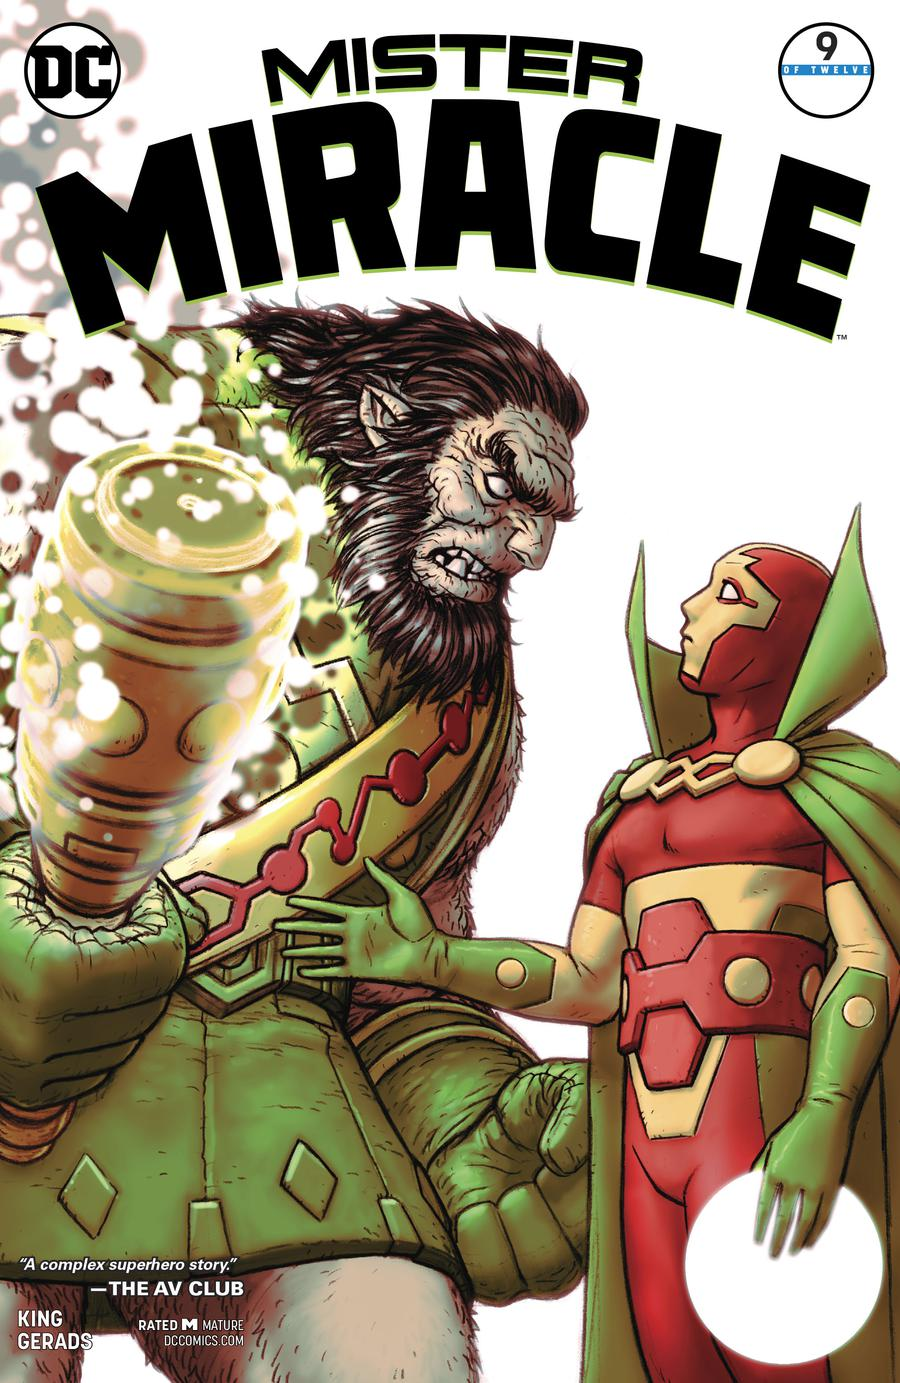 Mister Miracle Vol 4 #9 Cover A Regular Nick Derington Cover